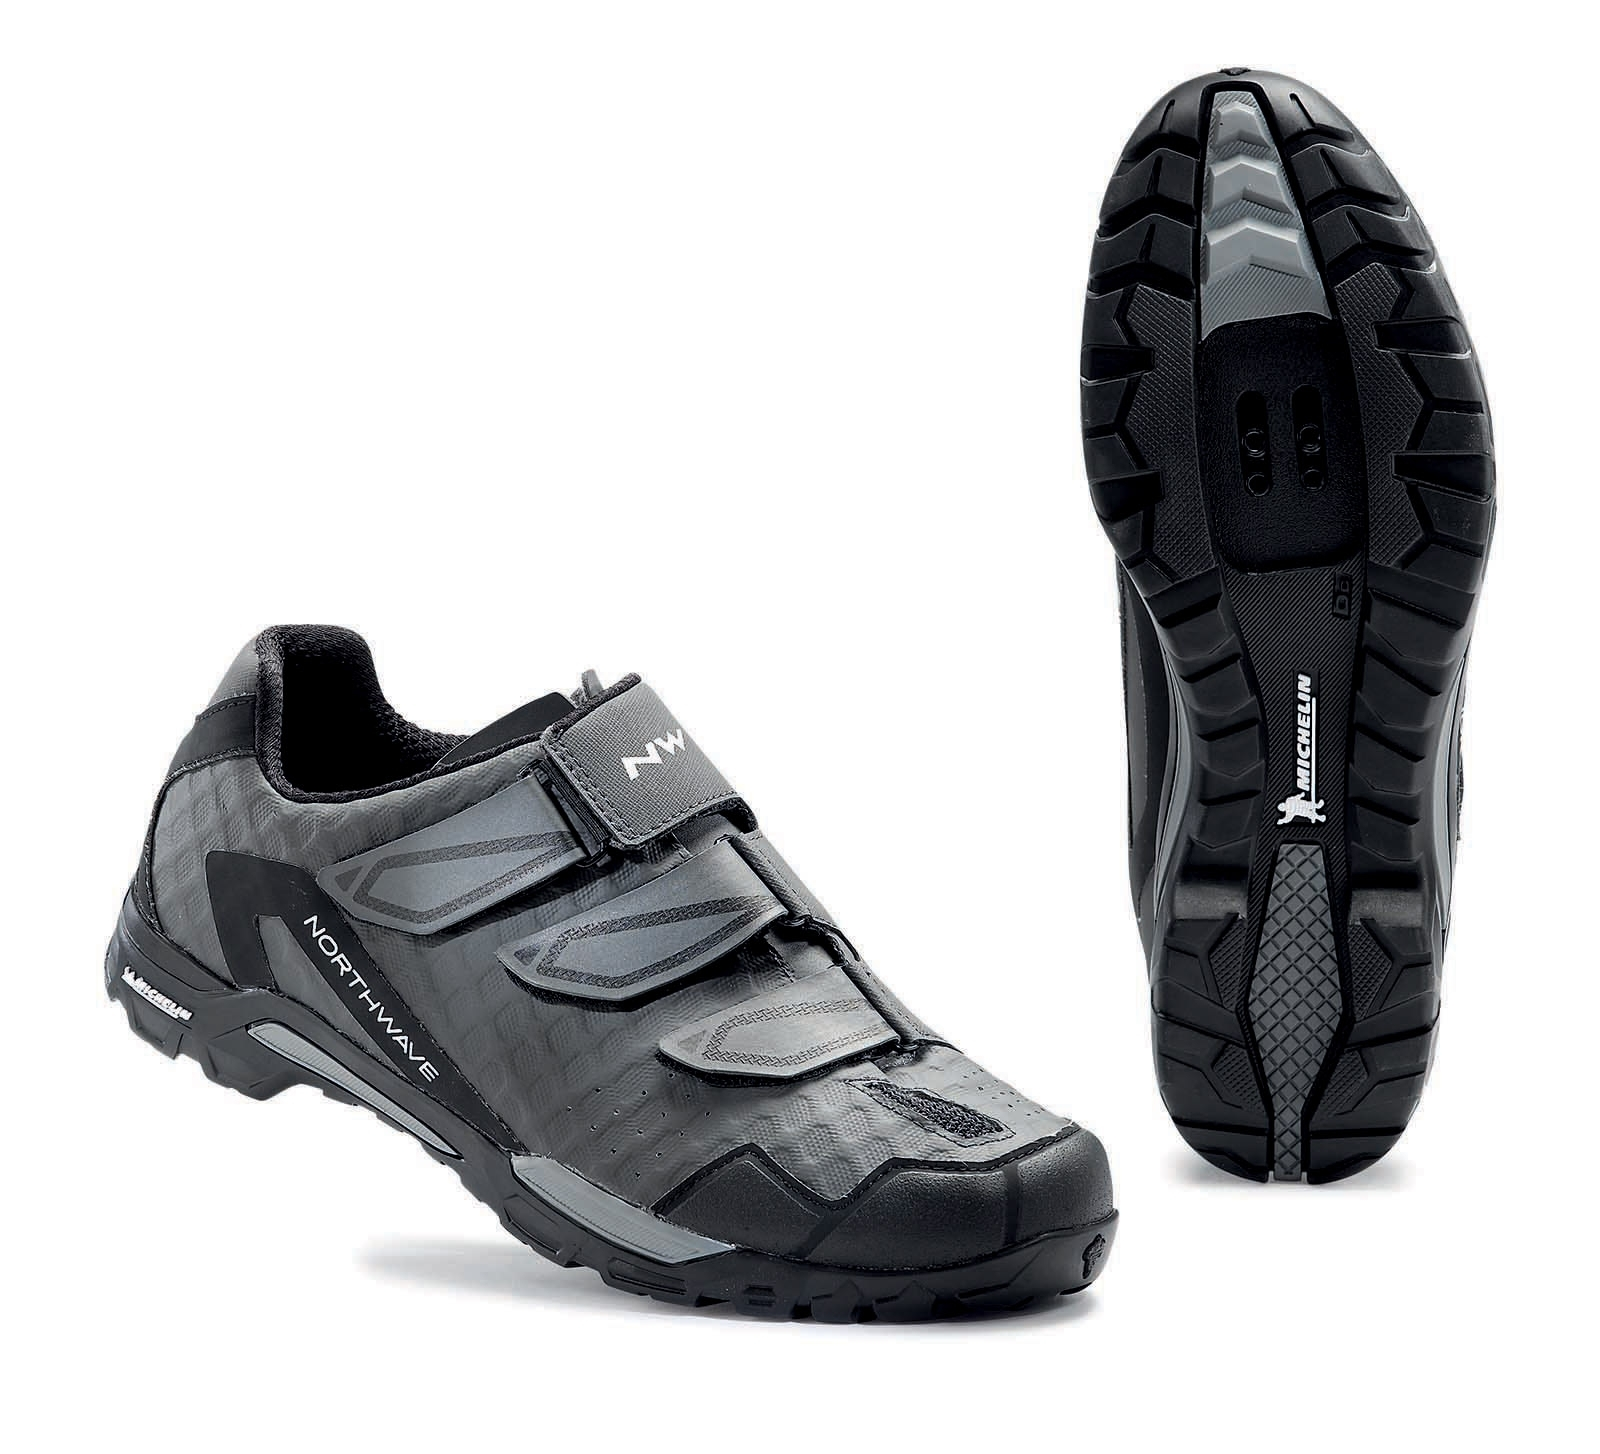 NORTHWAVE Man MTB trail shoes OUTCROSS anthracite grey/black